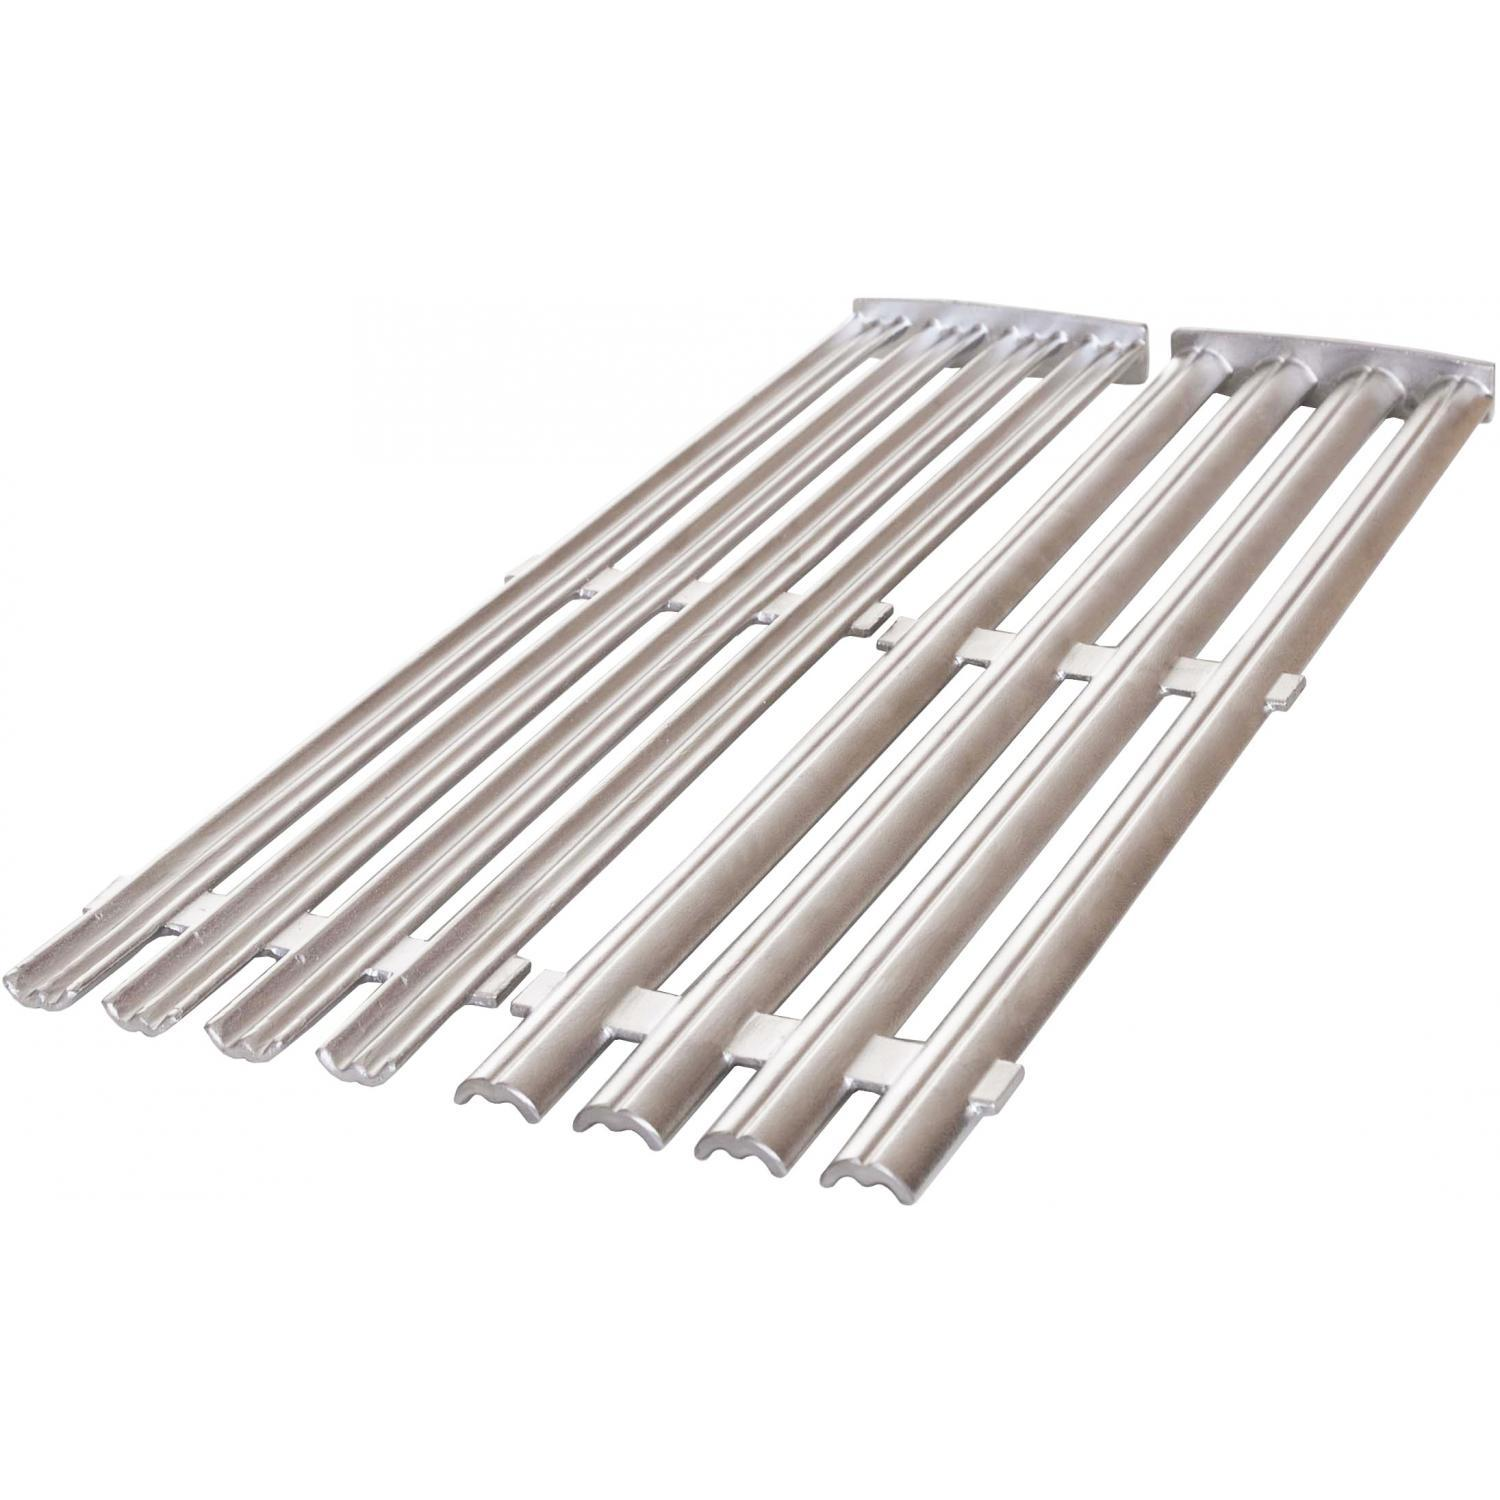 Double Sided Stainless Steel Cooking Grates